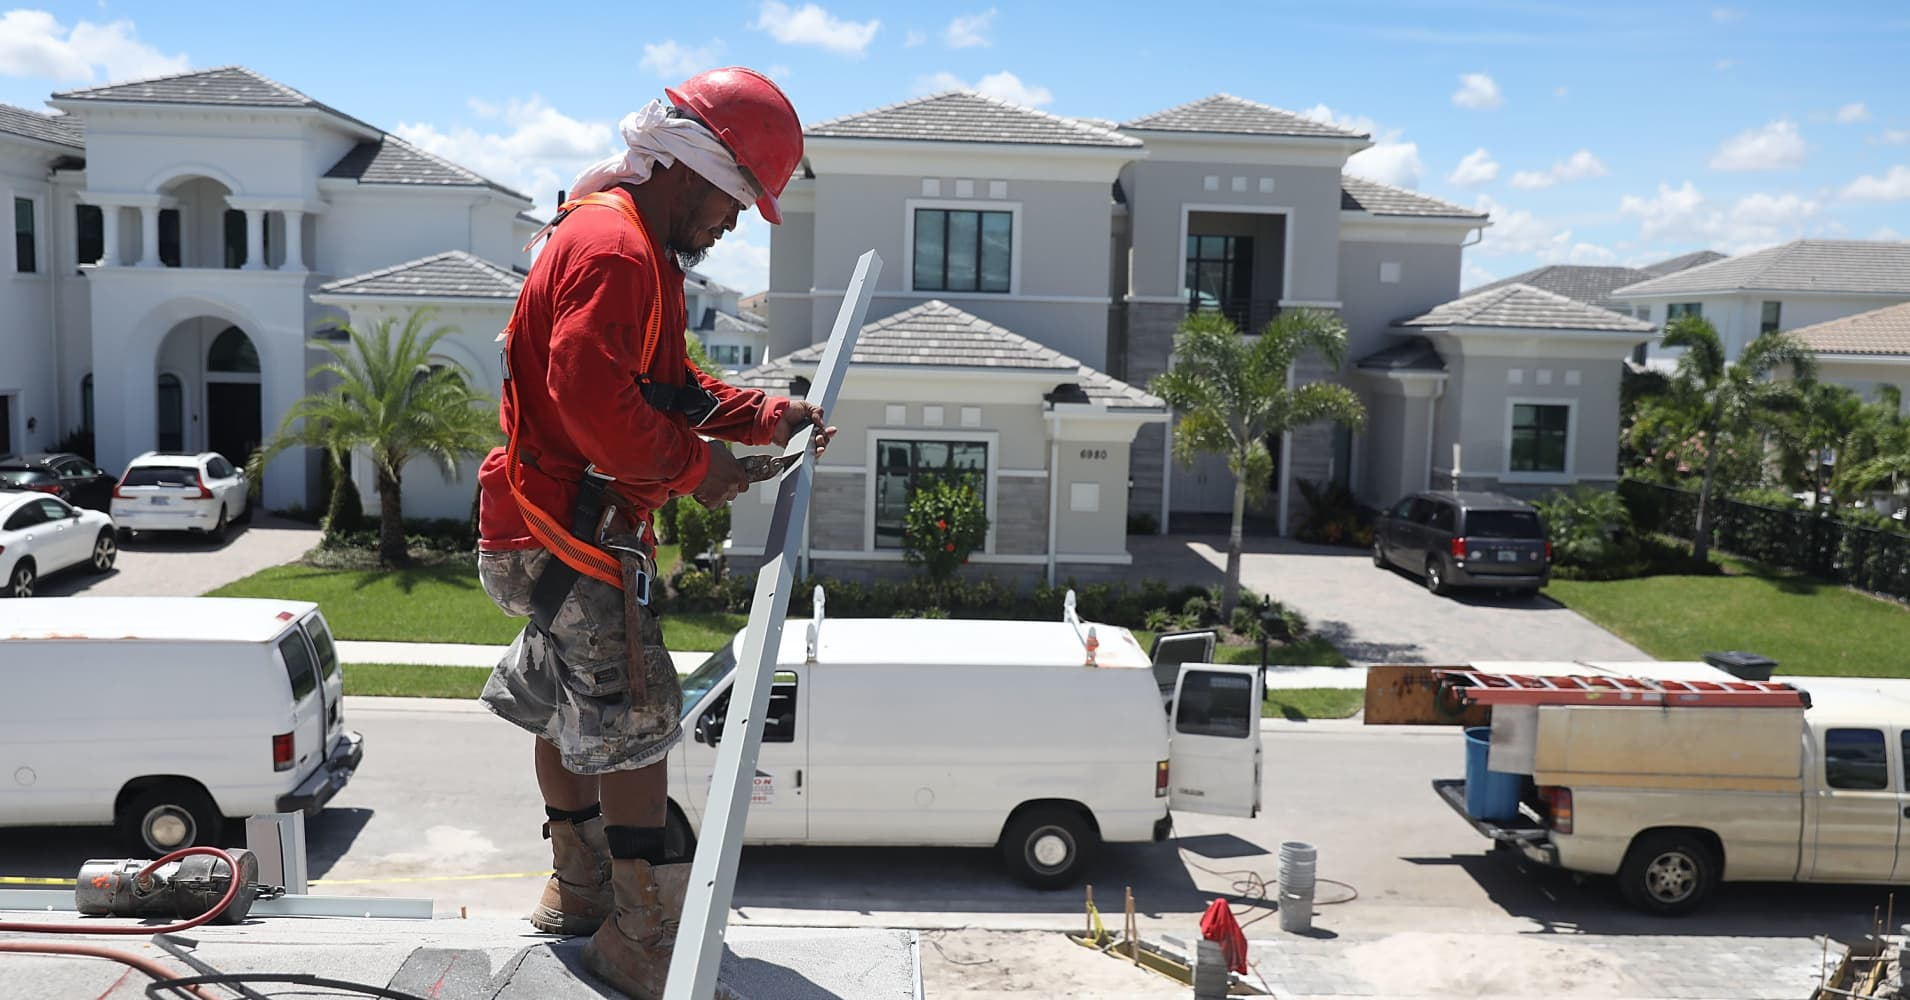 US new home sales declined 6.9 percent in January, a sign government shutdown hurt buying